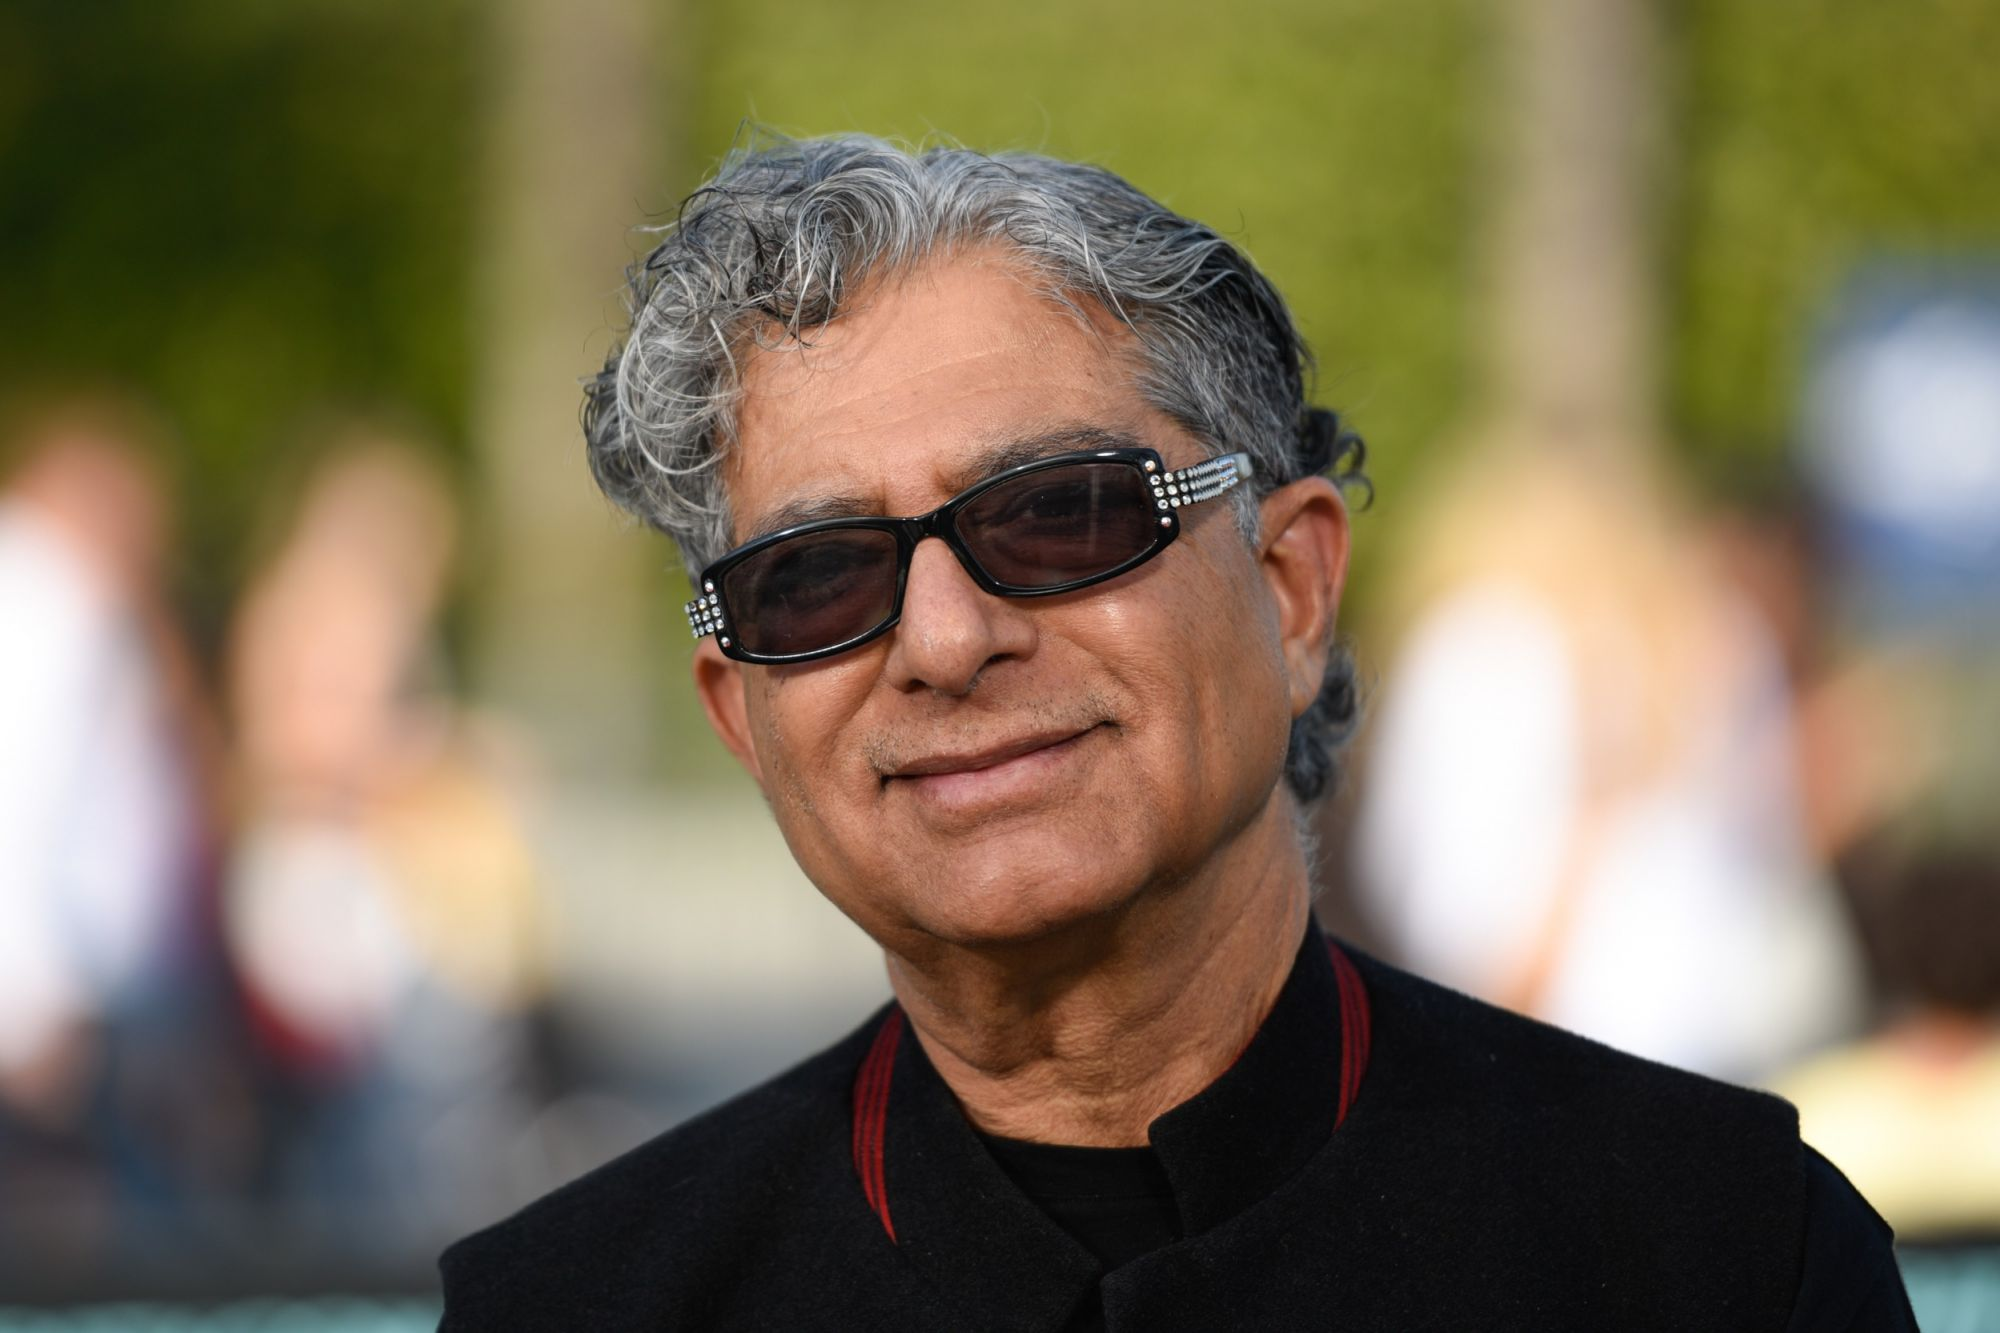 Deepak Chopra on Motivation, Meditation and Finding Peace in the Information Age (Podcast)